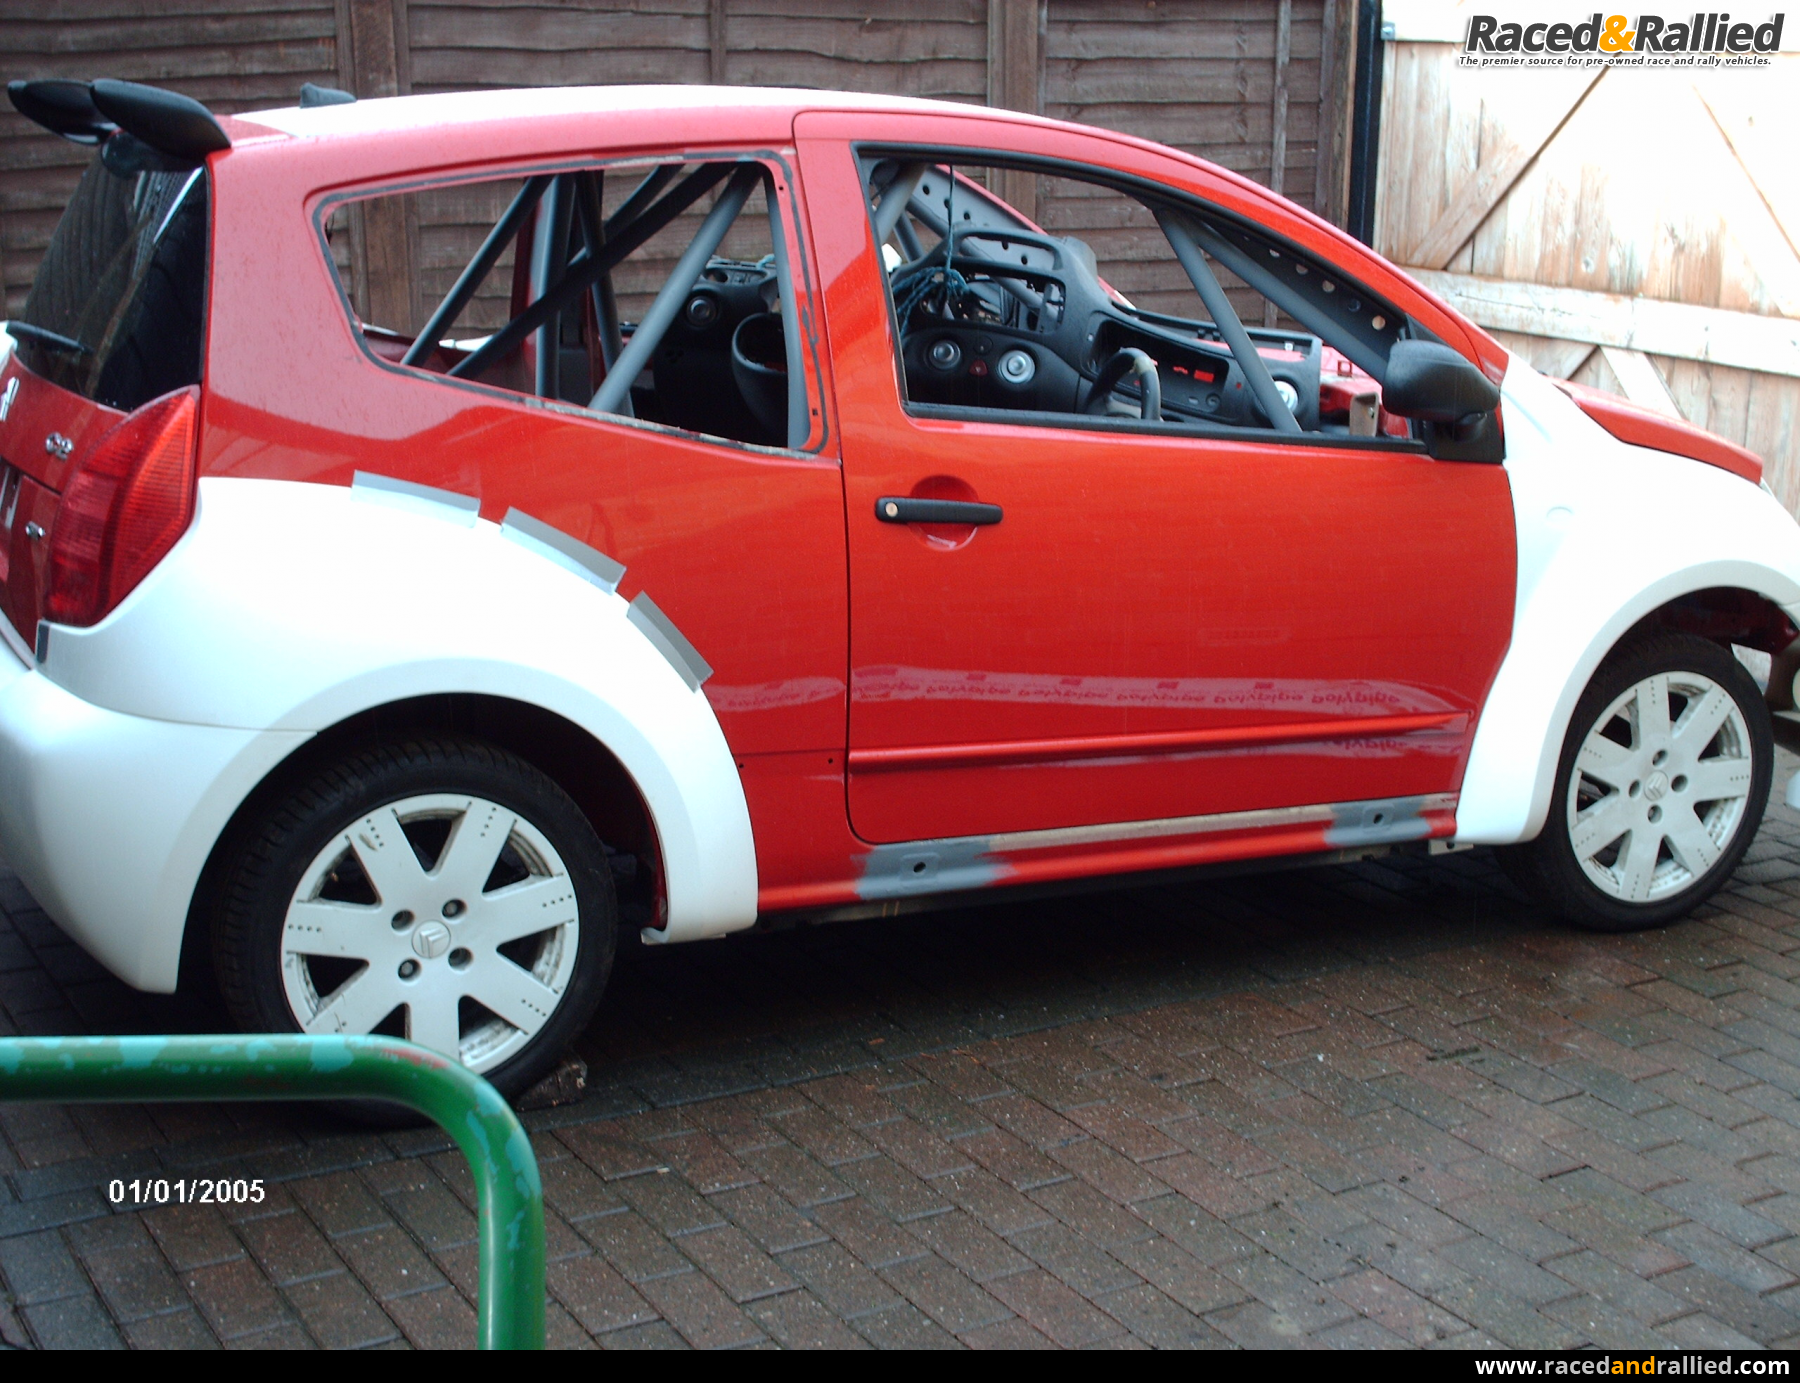 c2 rally car project | Rally Cars for sale at Raced & Rallied ...